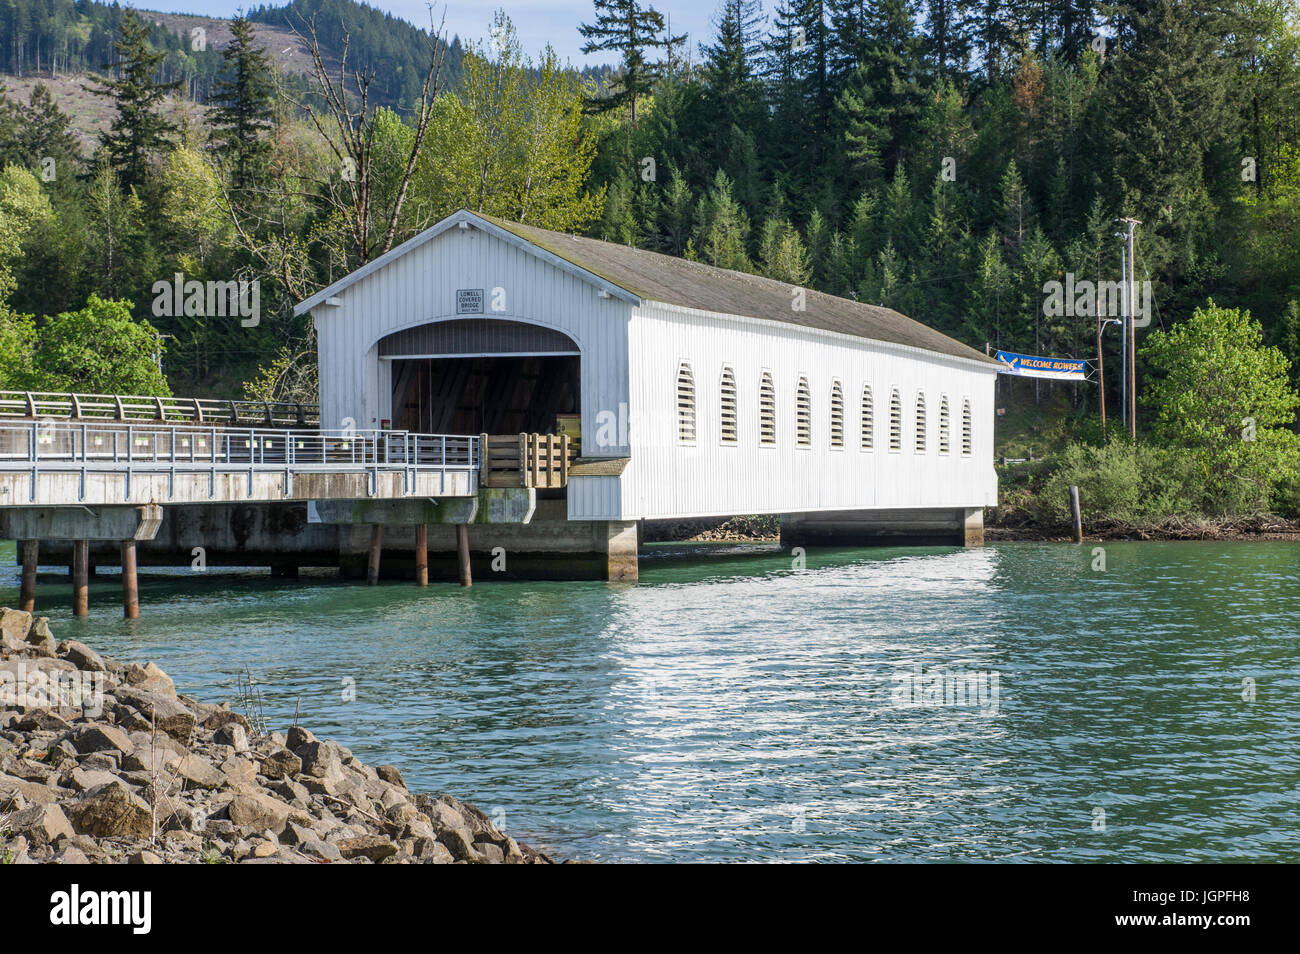 Historic Lowell Covered Bridge crosses the middle fork of the Willamette RIver.  Lowell, Oregon - Stock Image